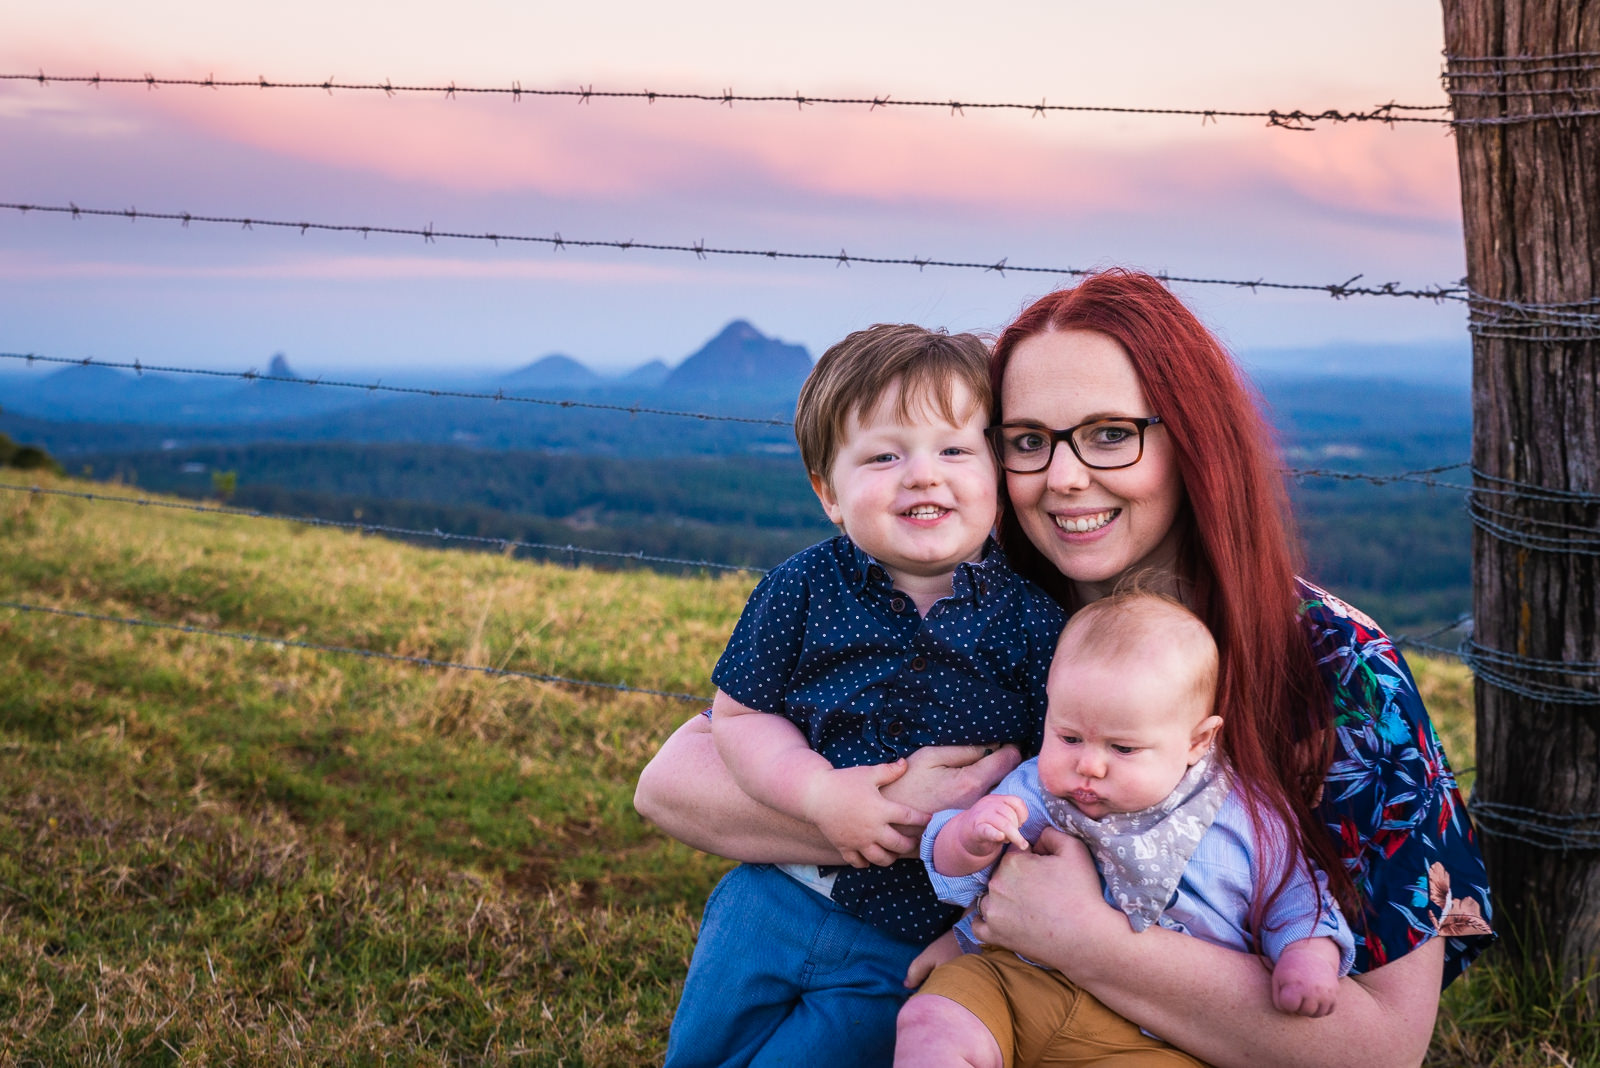 Mum and kids sitting down in rural setting overlooking the glass house mountains at sunset